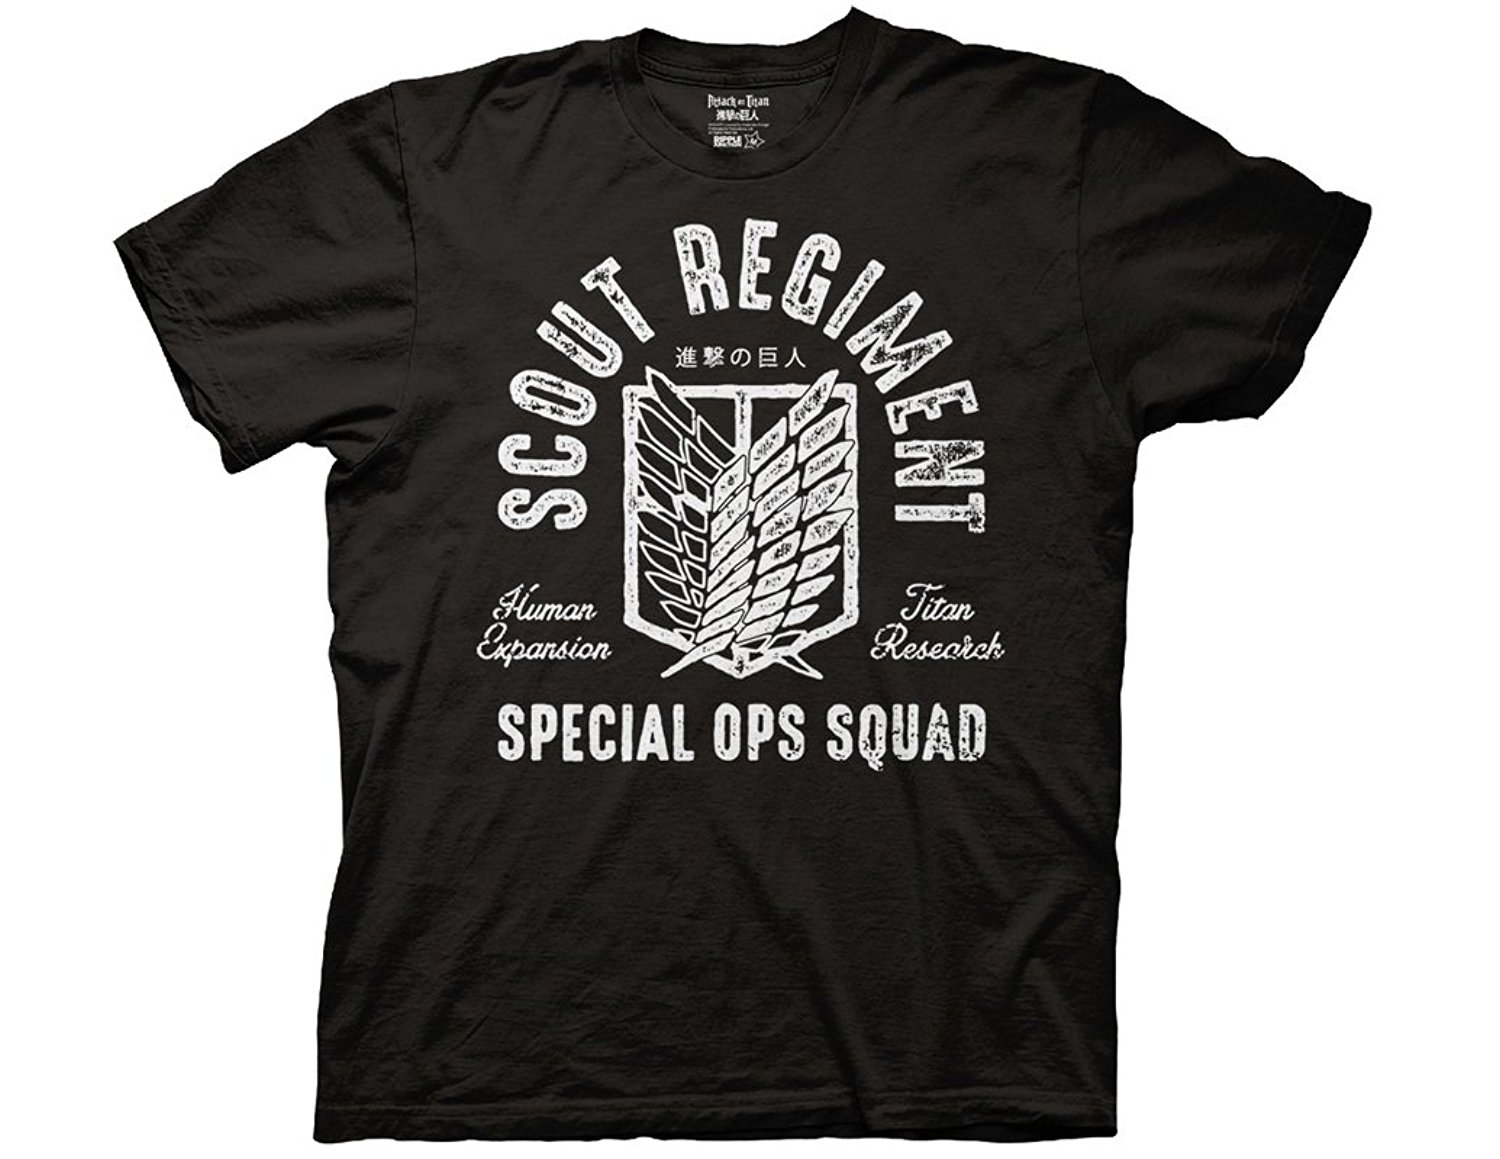 Ripple Junction Attack on Titan Scout Regiment Special OPS Squad Adult T-Shirt T Shirt Summer Famous Clothing Basic Tops